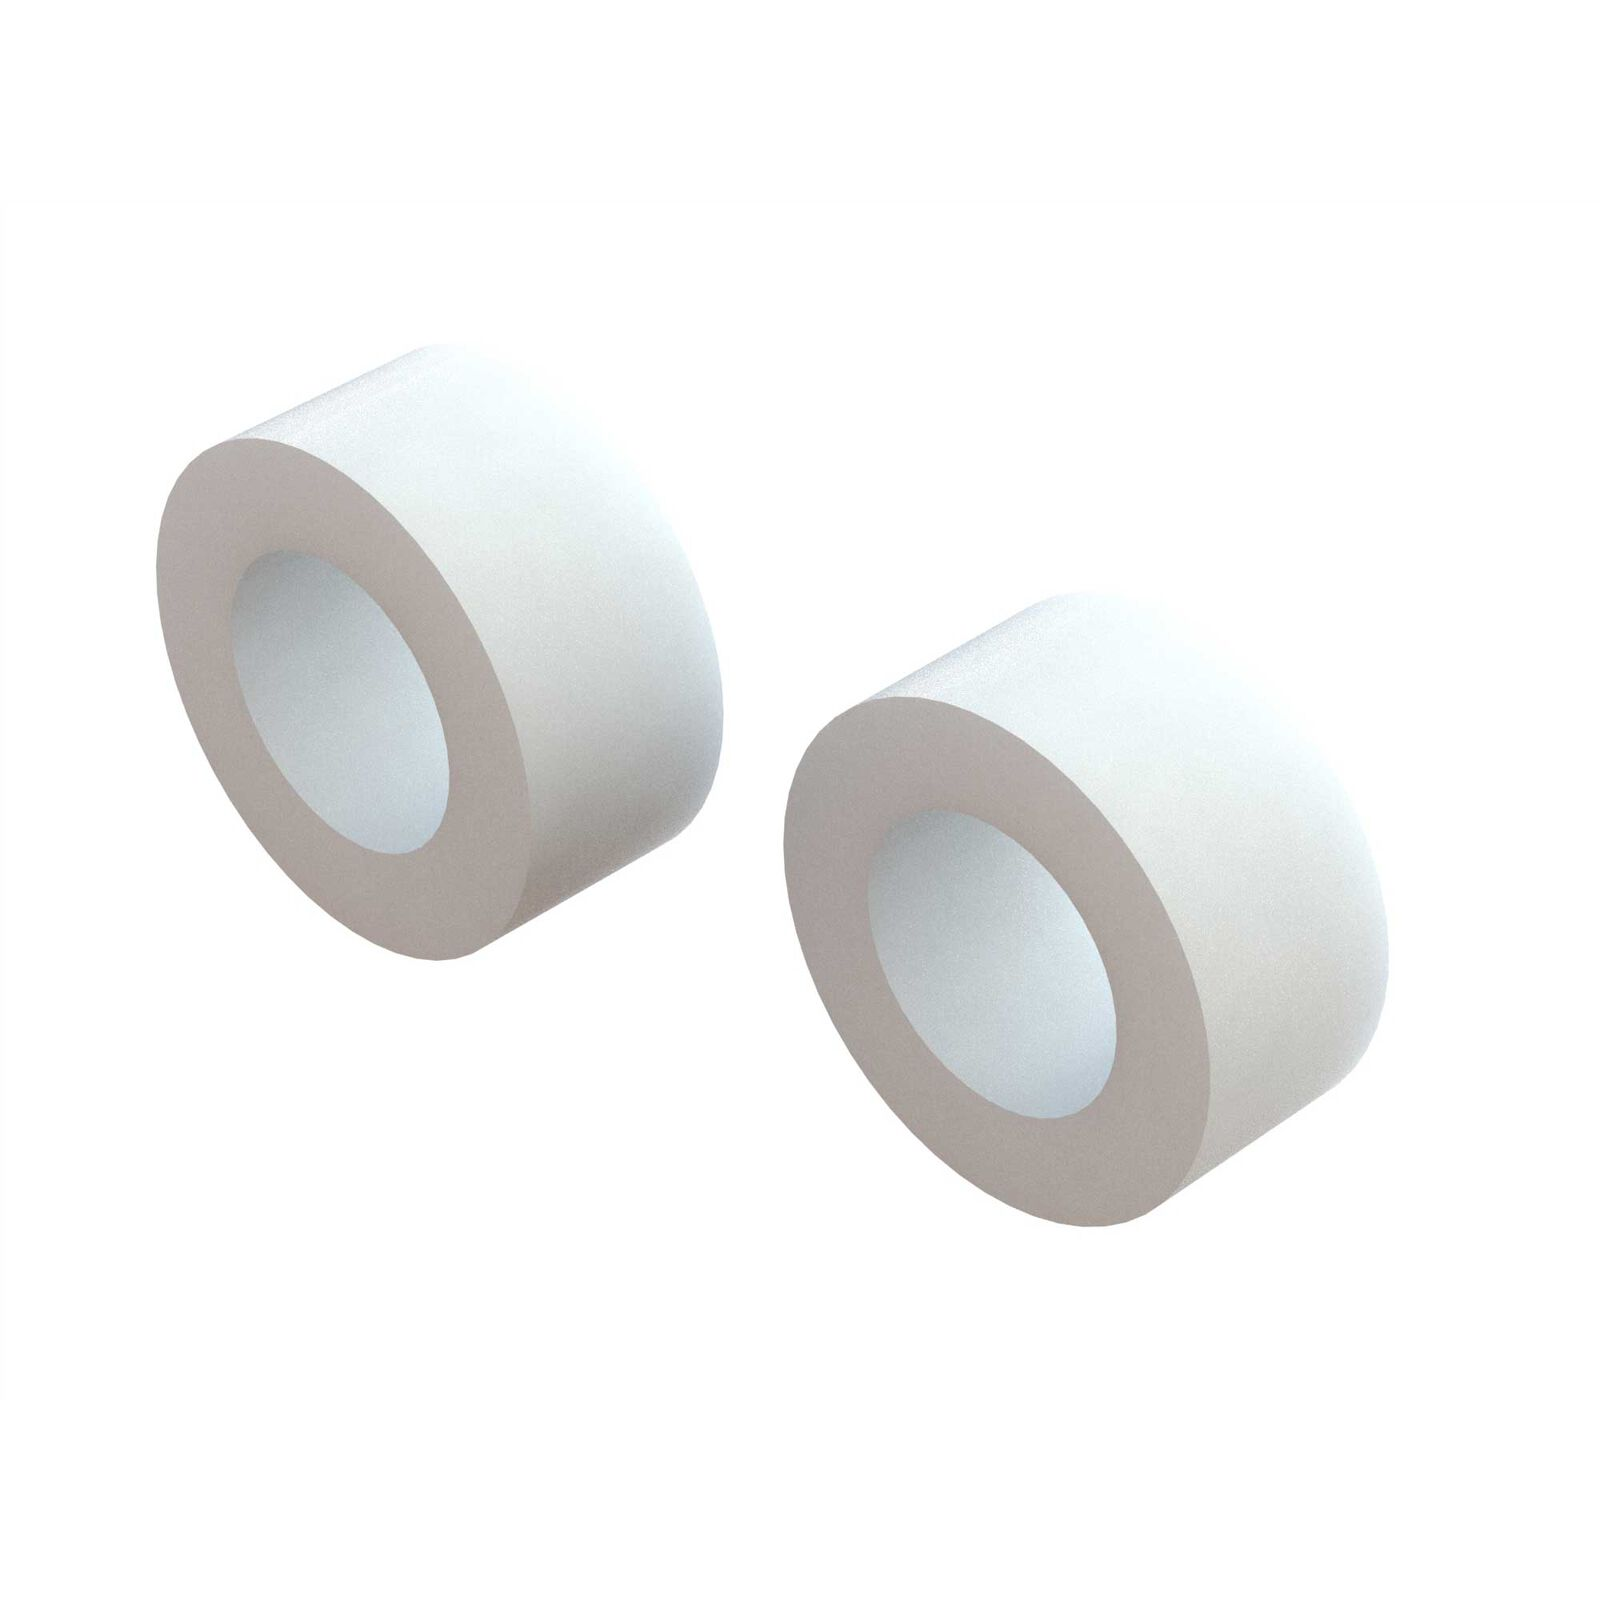 1/8 Front/Rear 2.8 Medium Foam Tire with Inserts, (2)